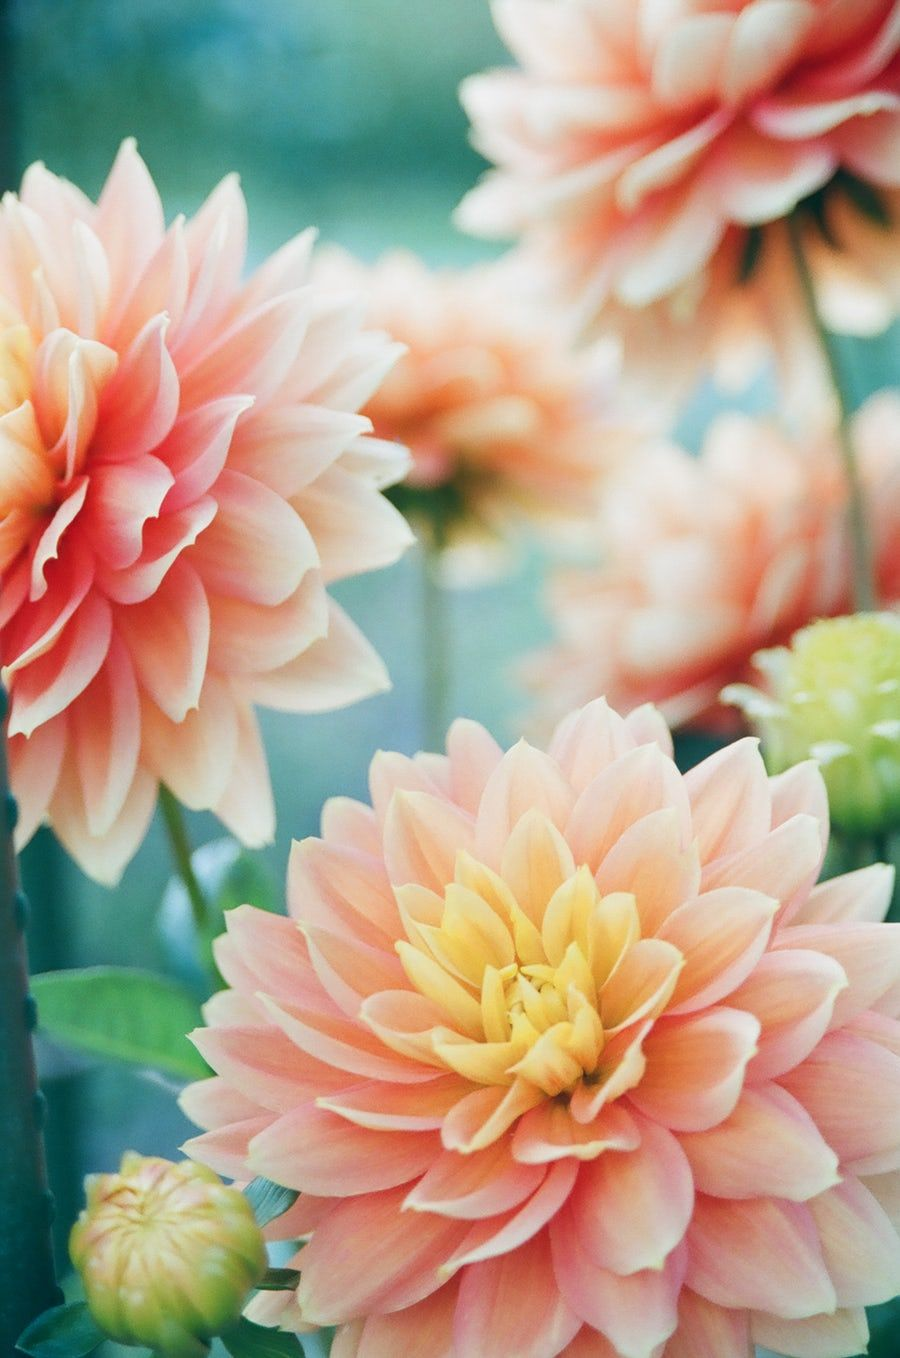 Dahlia Pictures Download Free Images On Unsplash Flowers Flowers Photography Flower Images